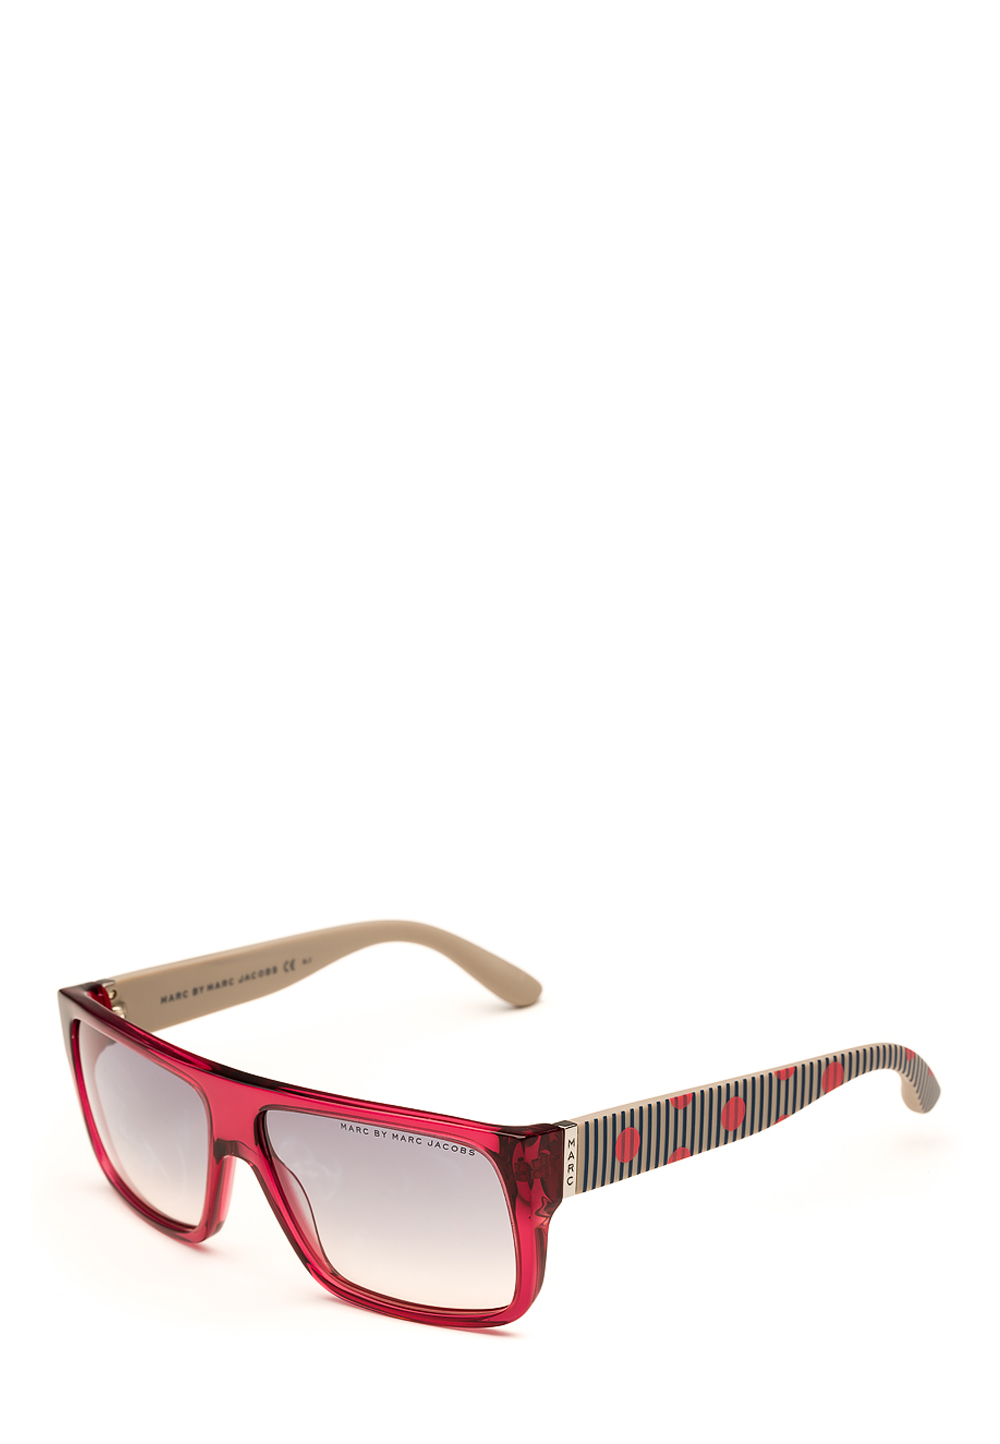 Marc BY Sonnenbrille Mmj096, UV 400, pink rosa